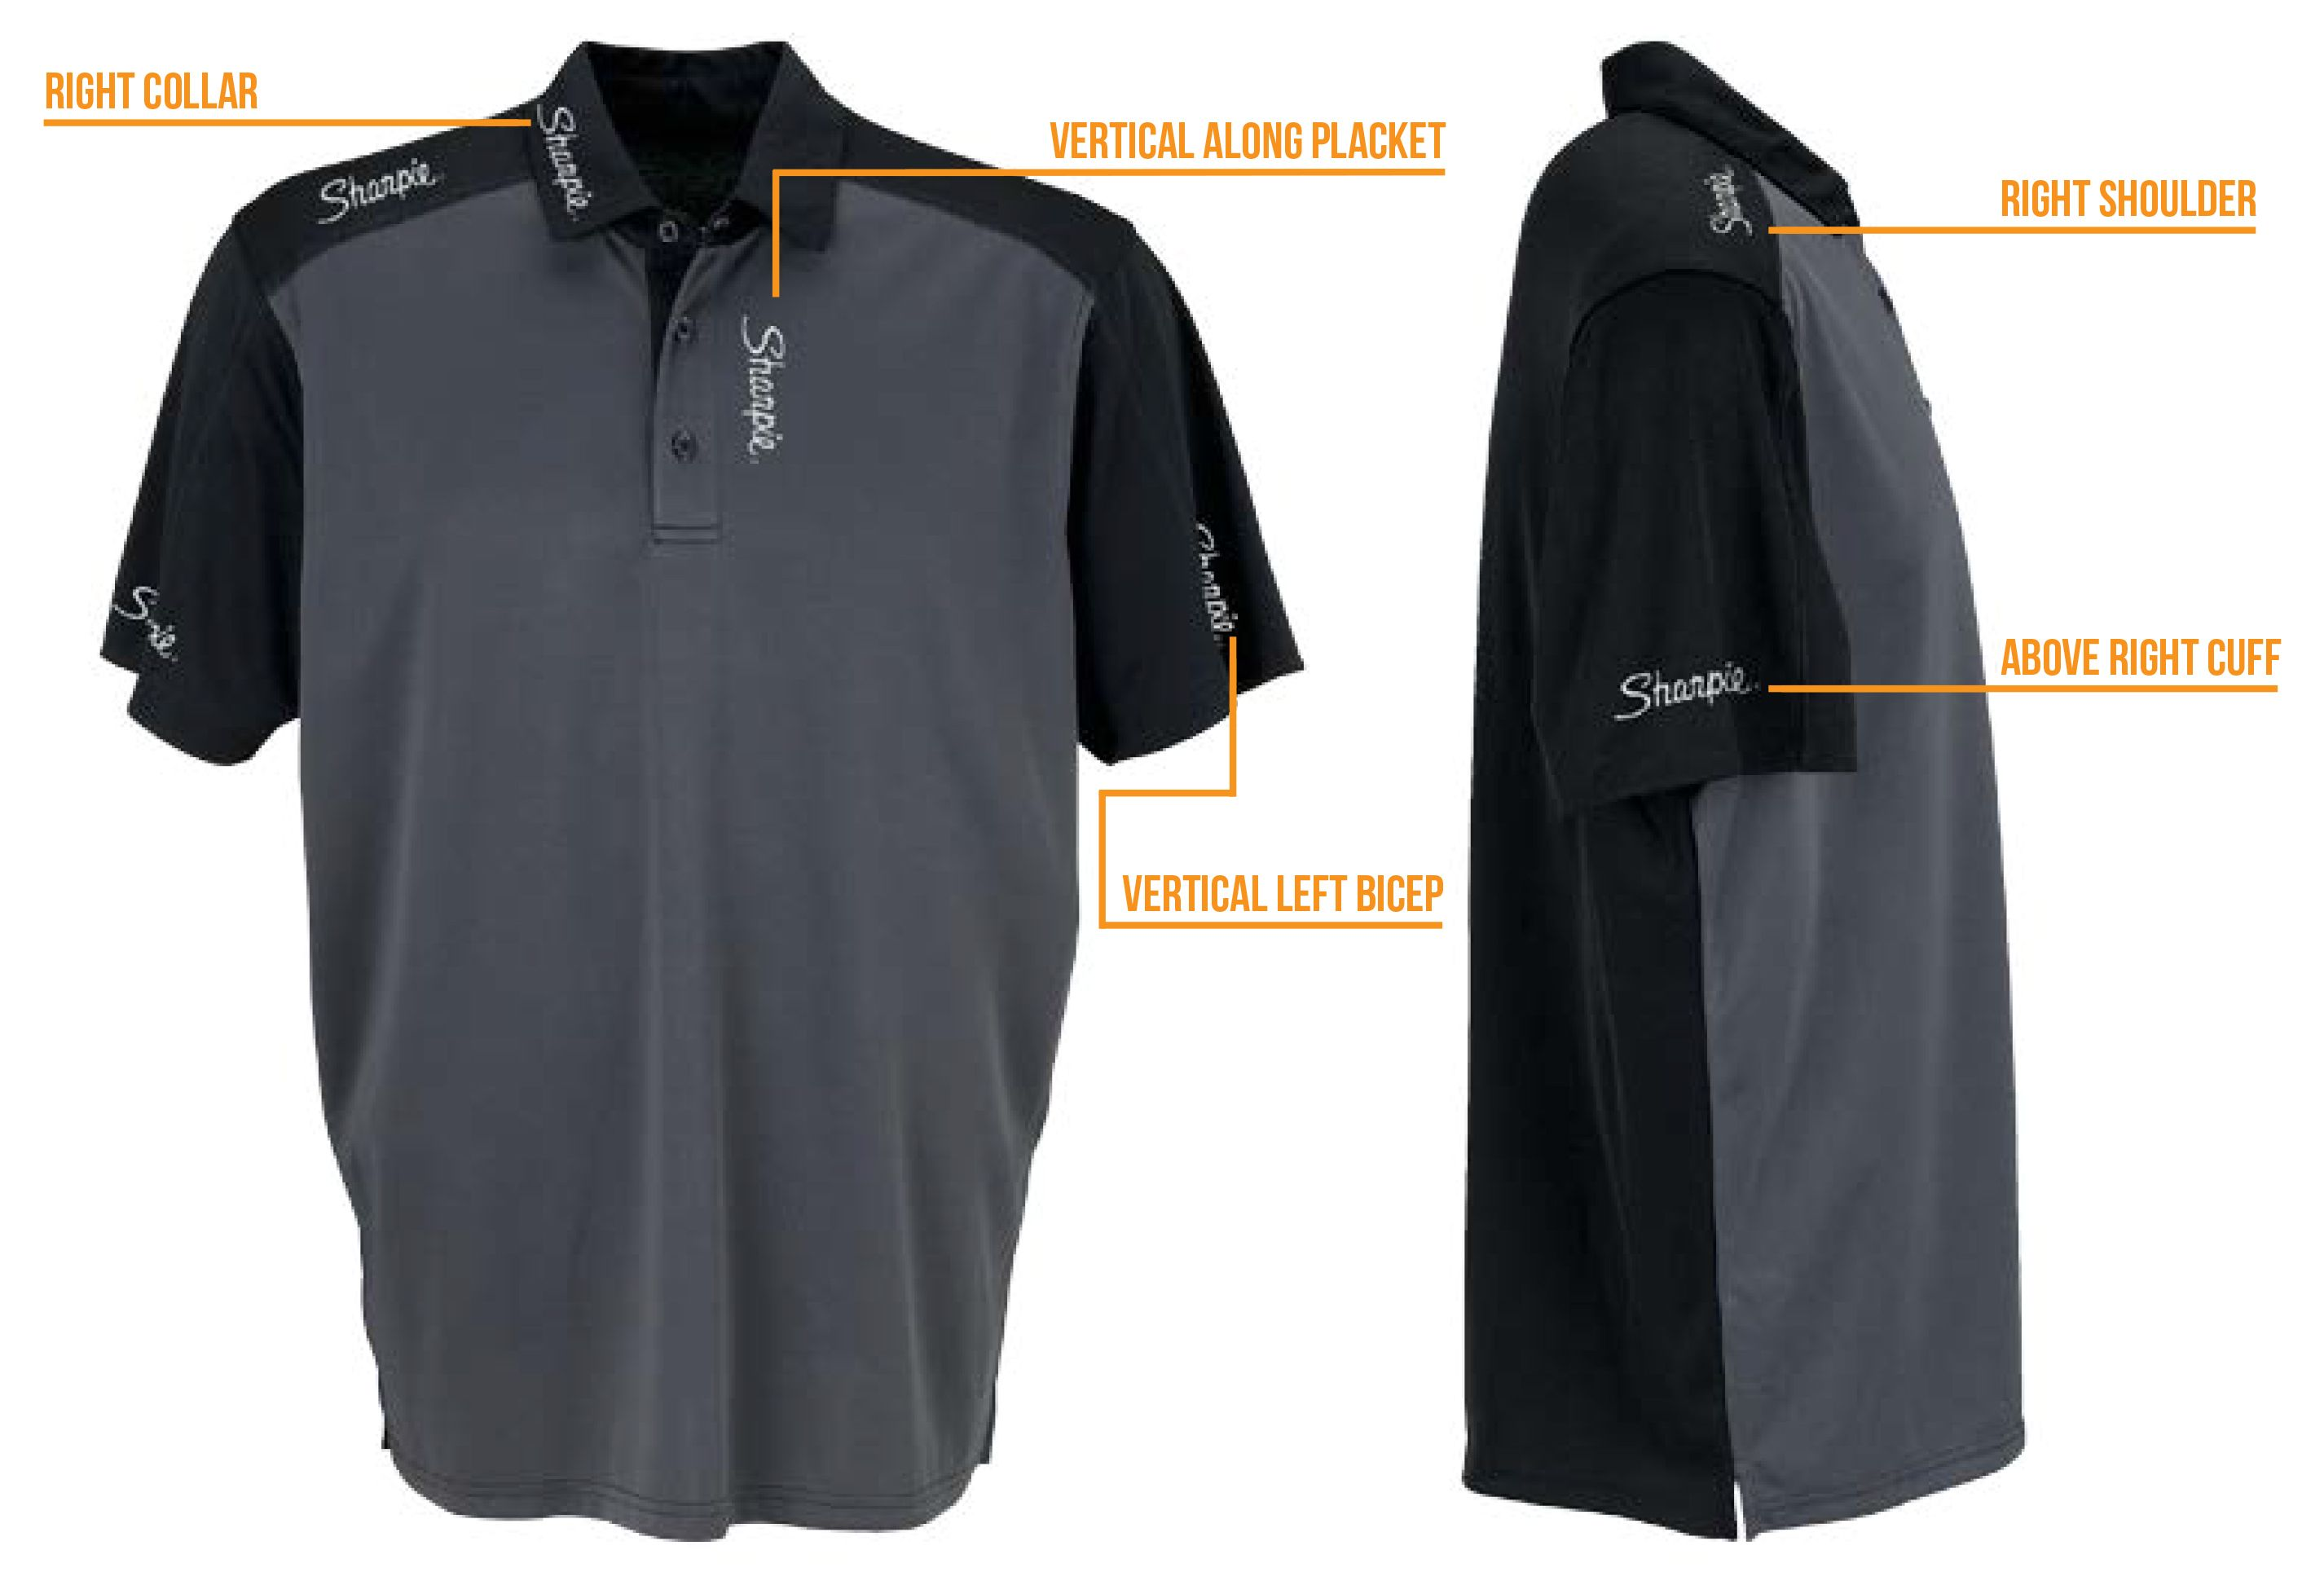 Check out our Branded Apparel 101 Blog article